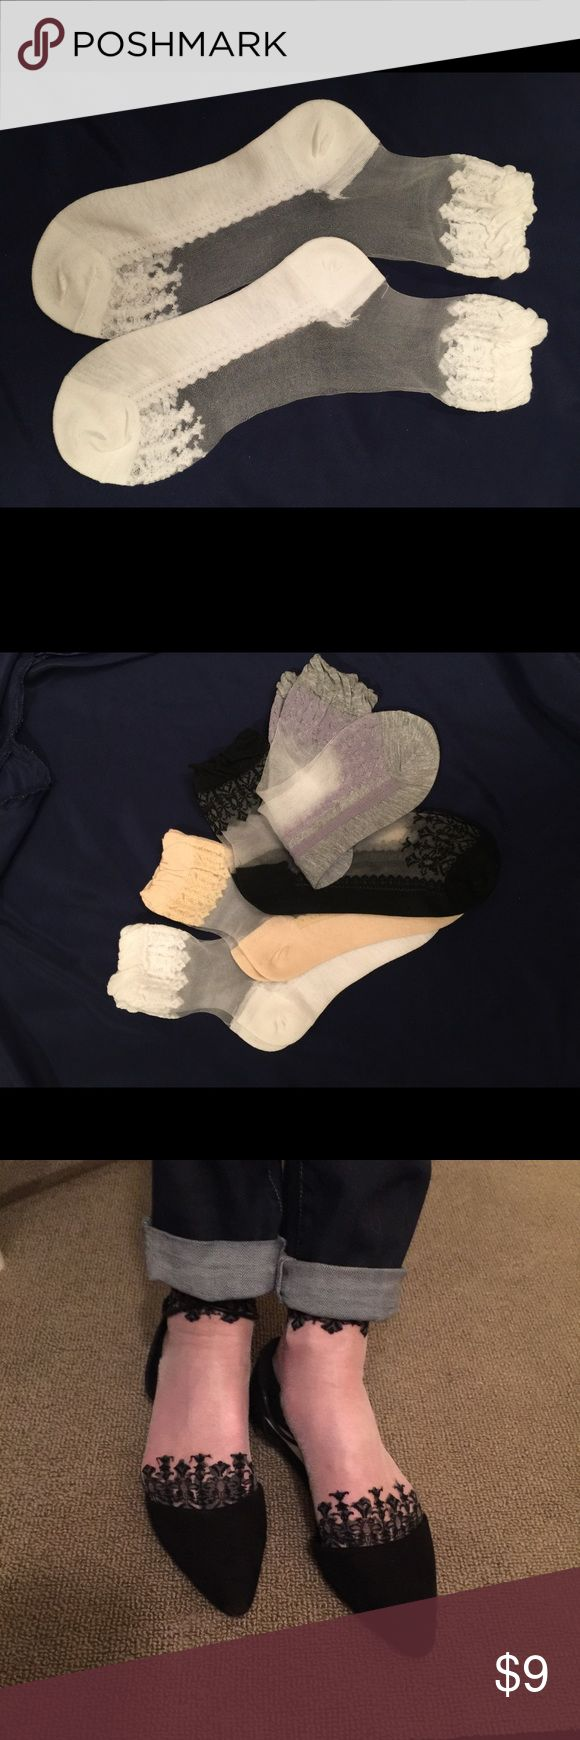 Elegant yet casual stockings for flats and bootys. NWT several colors avail. =black, white, cream, light blue, soft pink, soft lavender. Fits ladies shoes 5-8. Seasonal trend!!!!   Bundle to save!  Ask for specific color!!! 😊💕 Accessories Hosiery & Socks